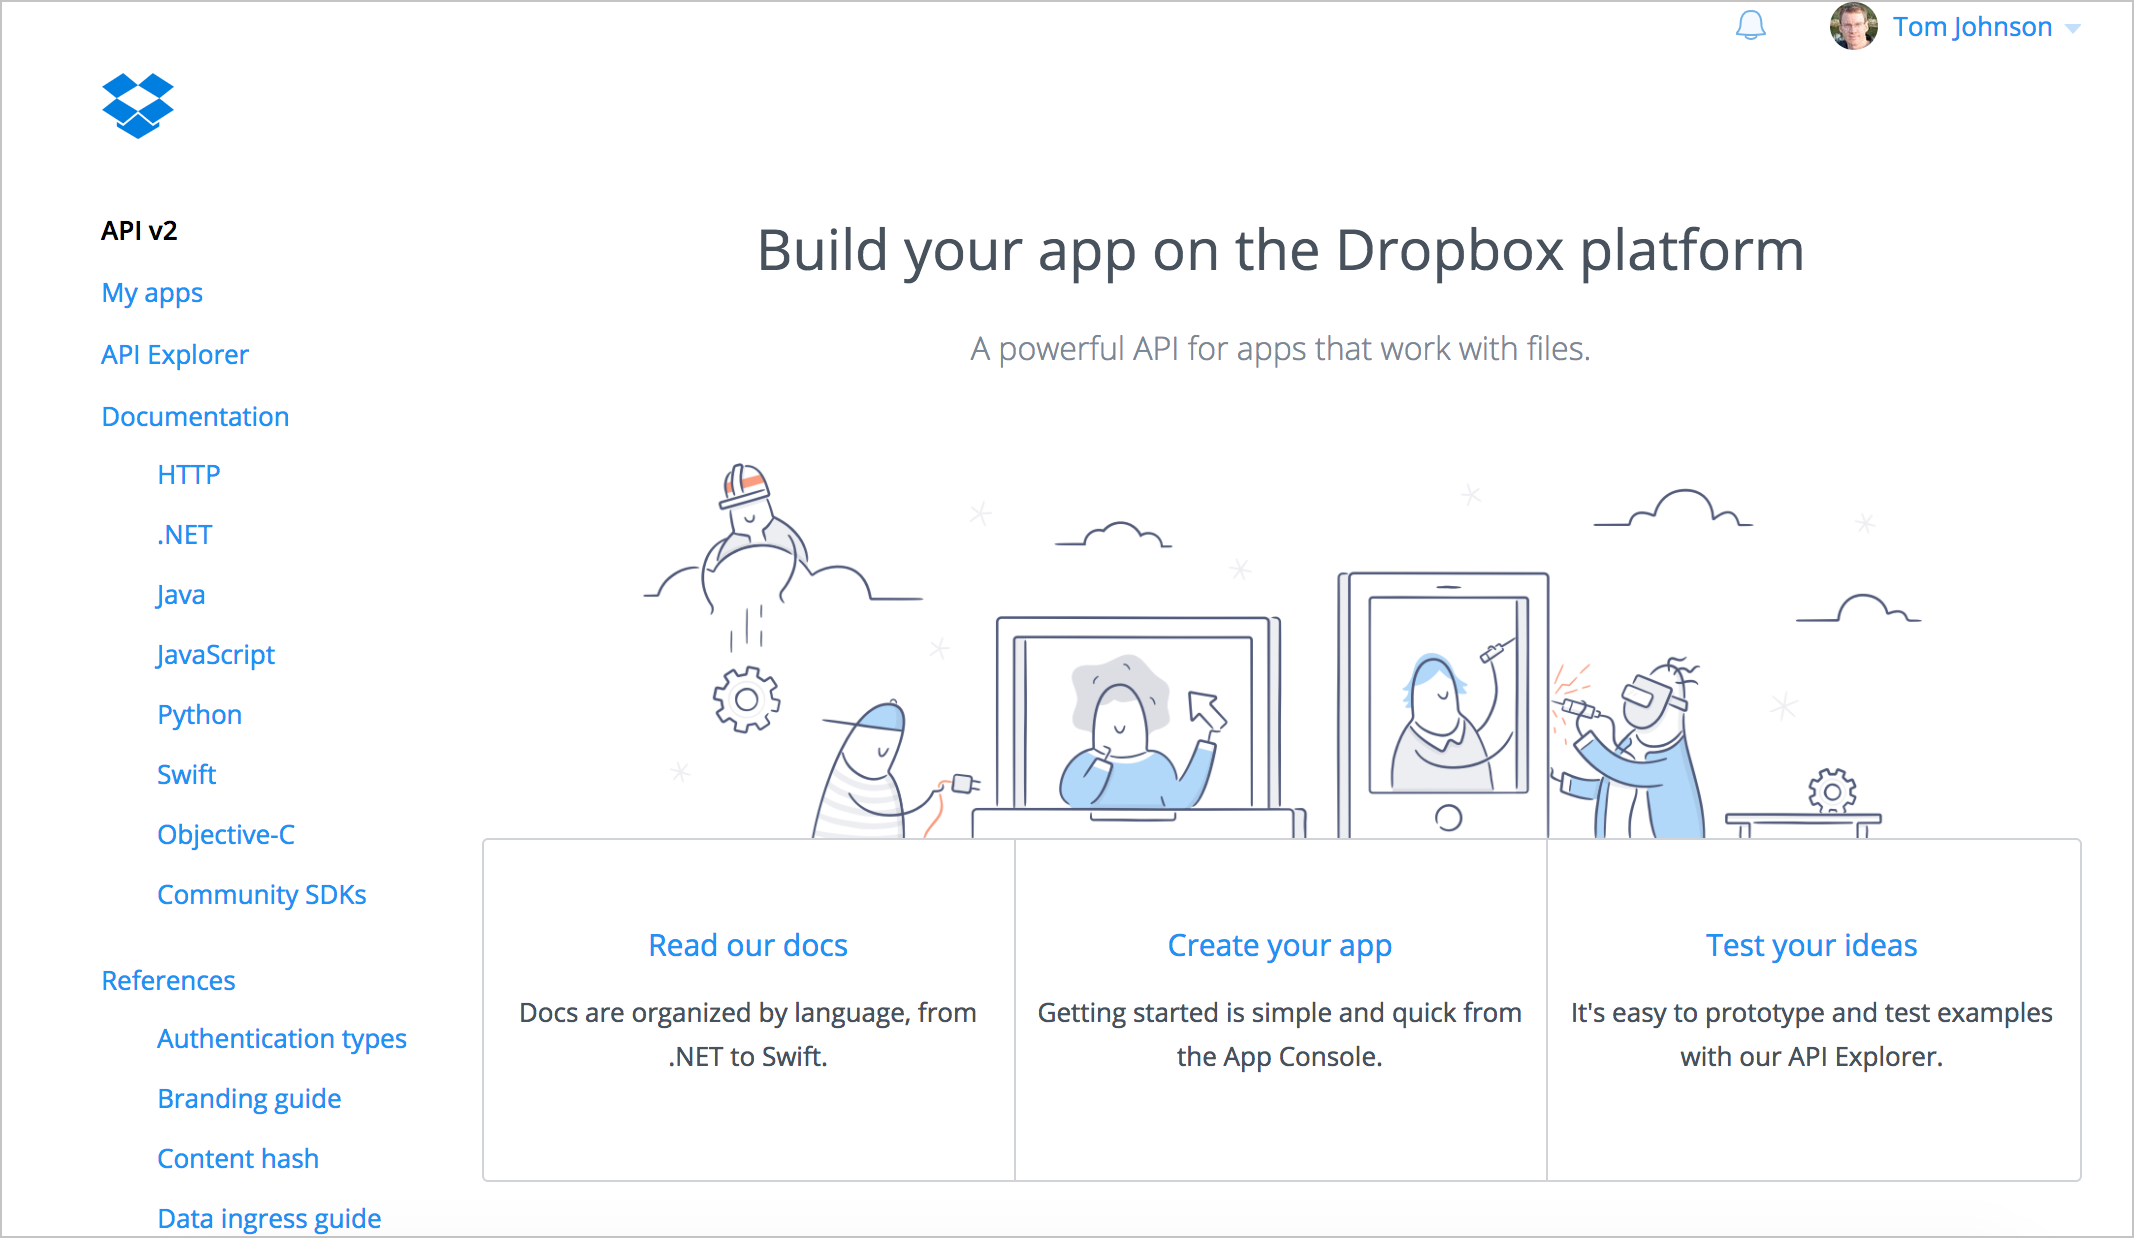 Dropbox API's developer site has a simple but clean UI